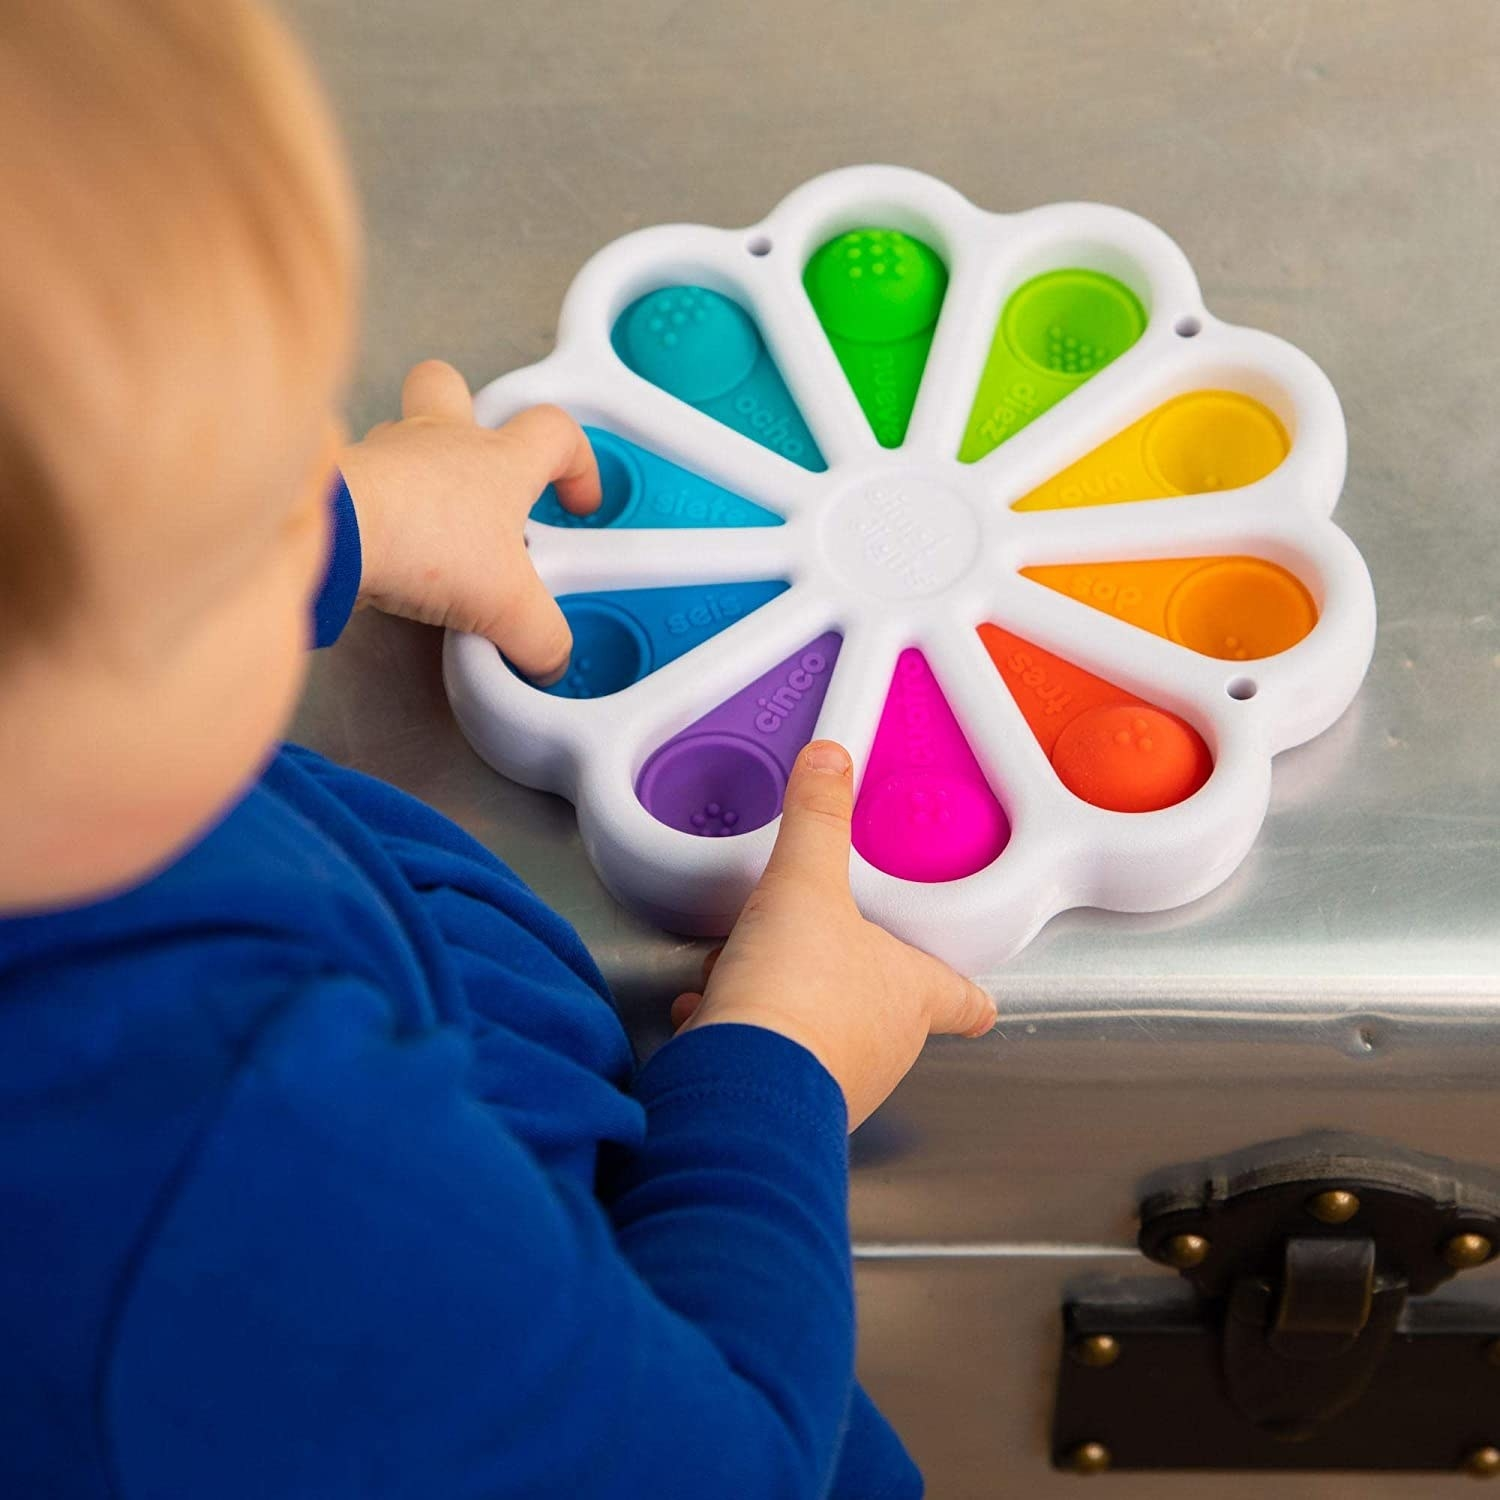 Child model playing with colorful wheel of Dimpl Digits